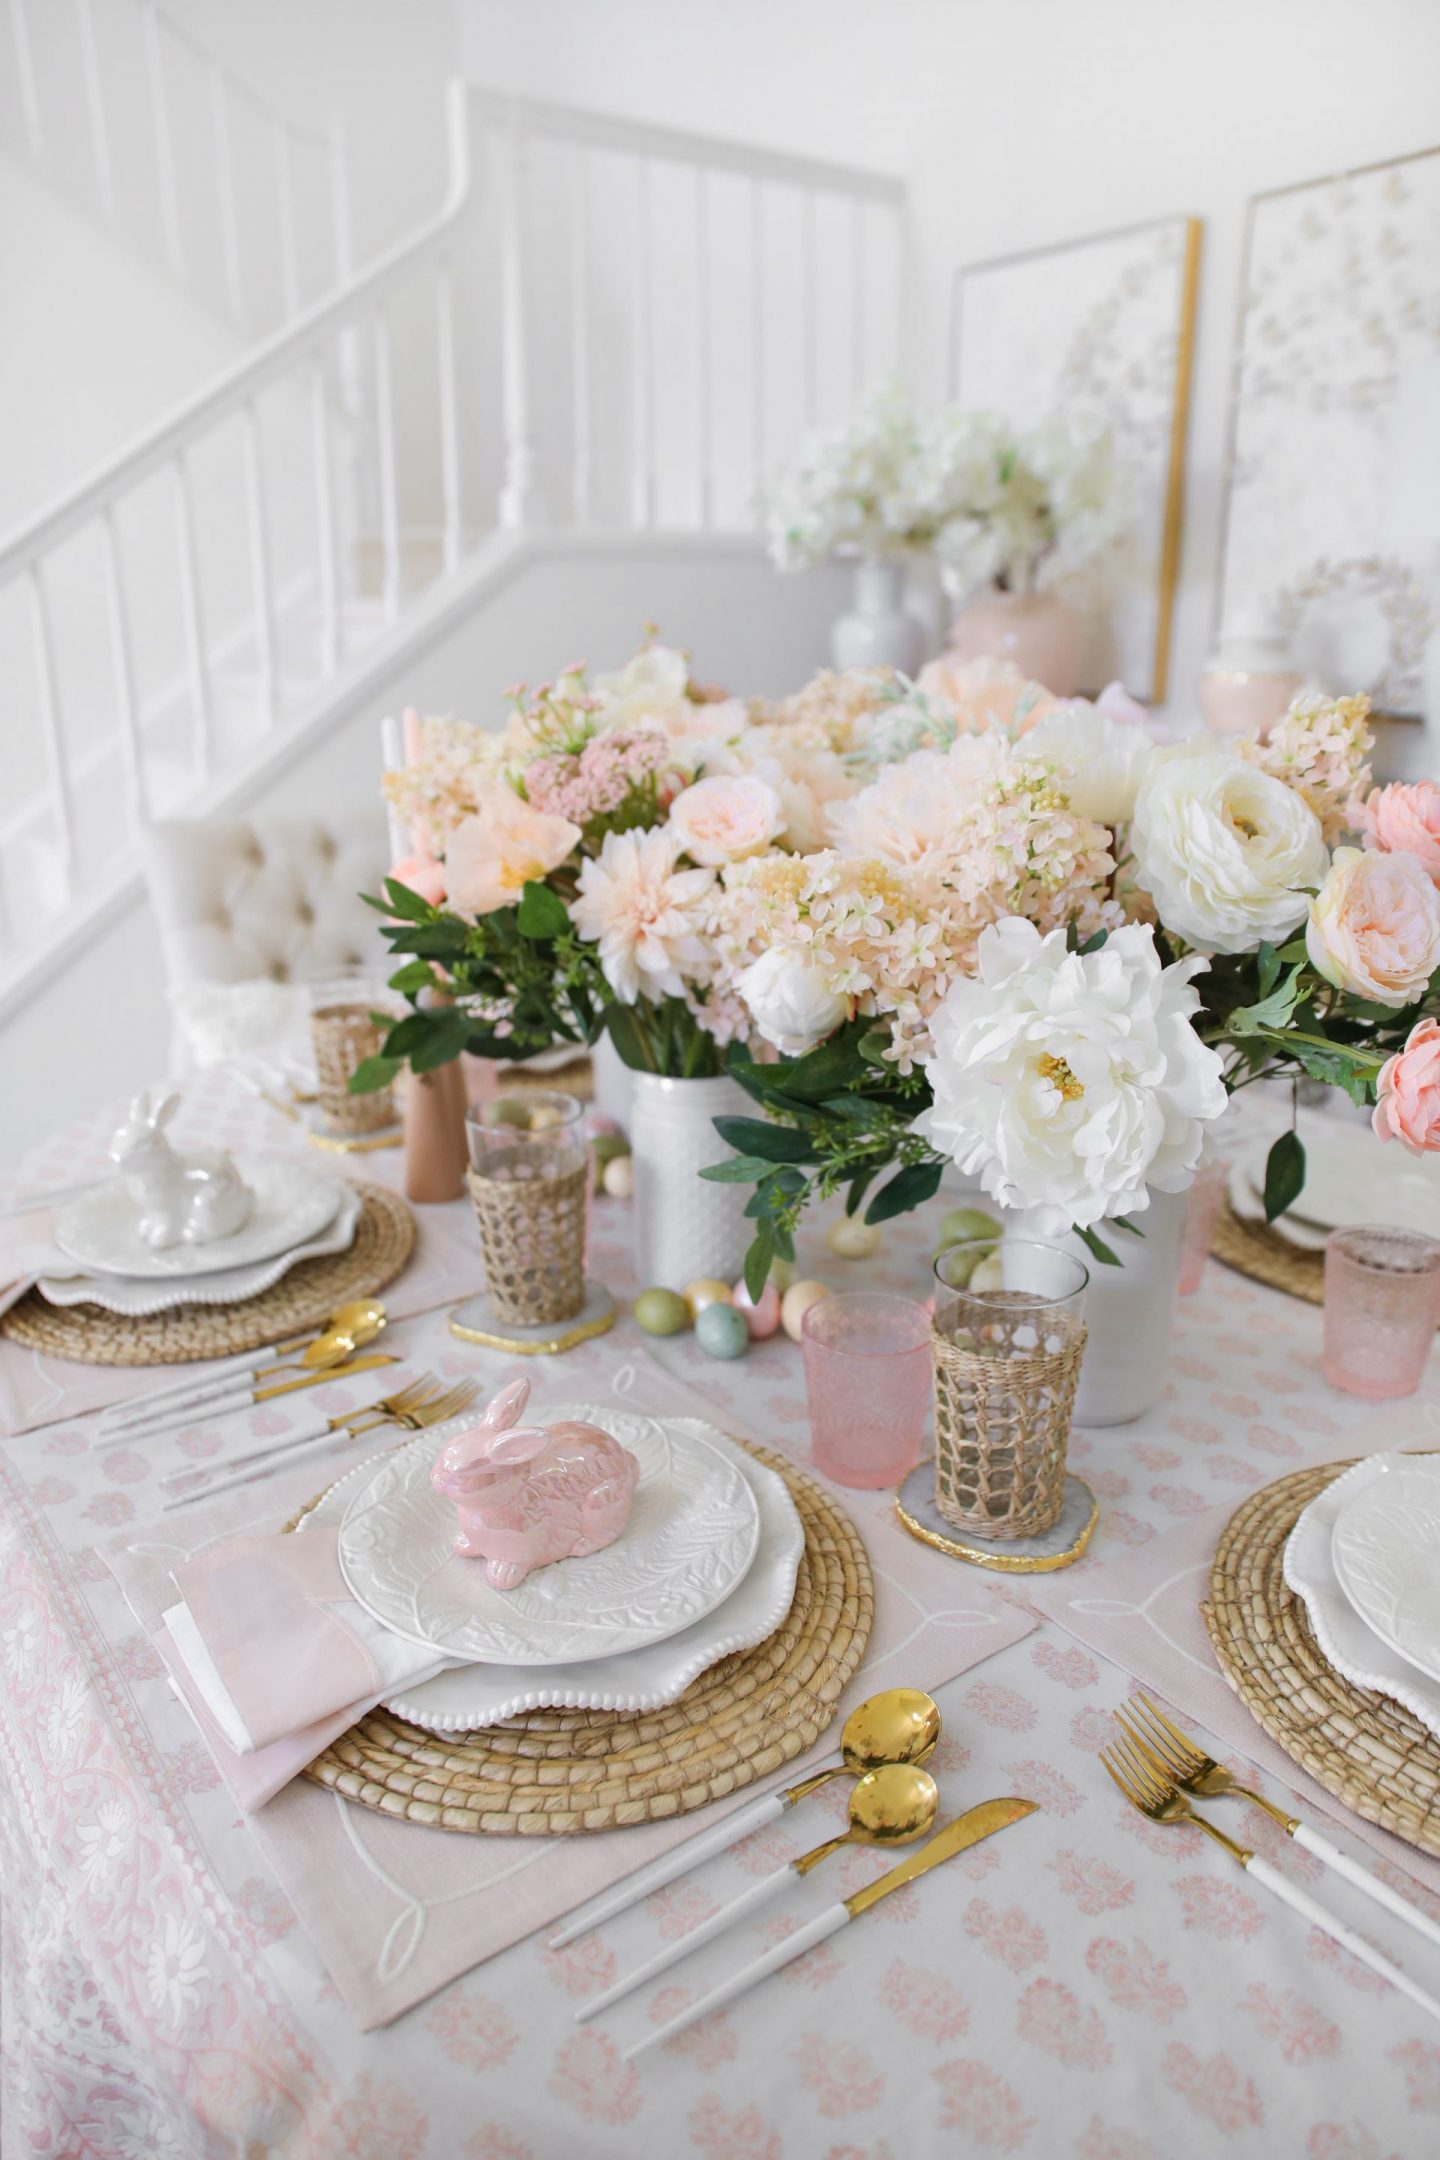 Blush pastel Easter table scape styling ideas, by Lombard & Fifth blogger Veronica Levy.